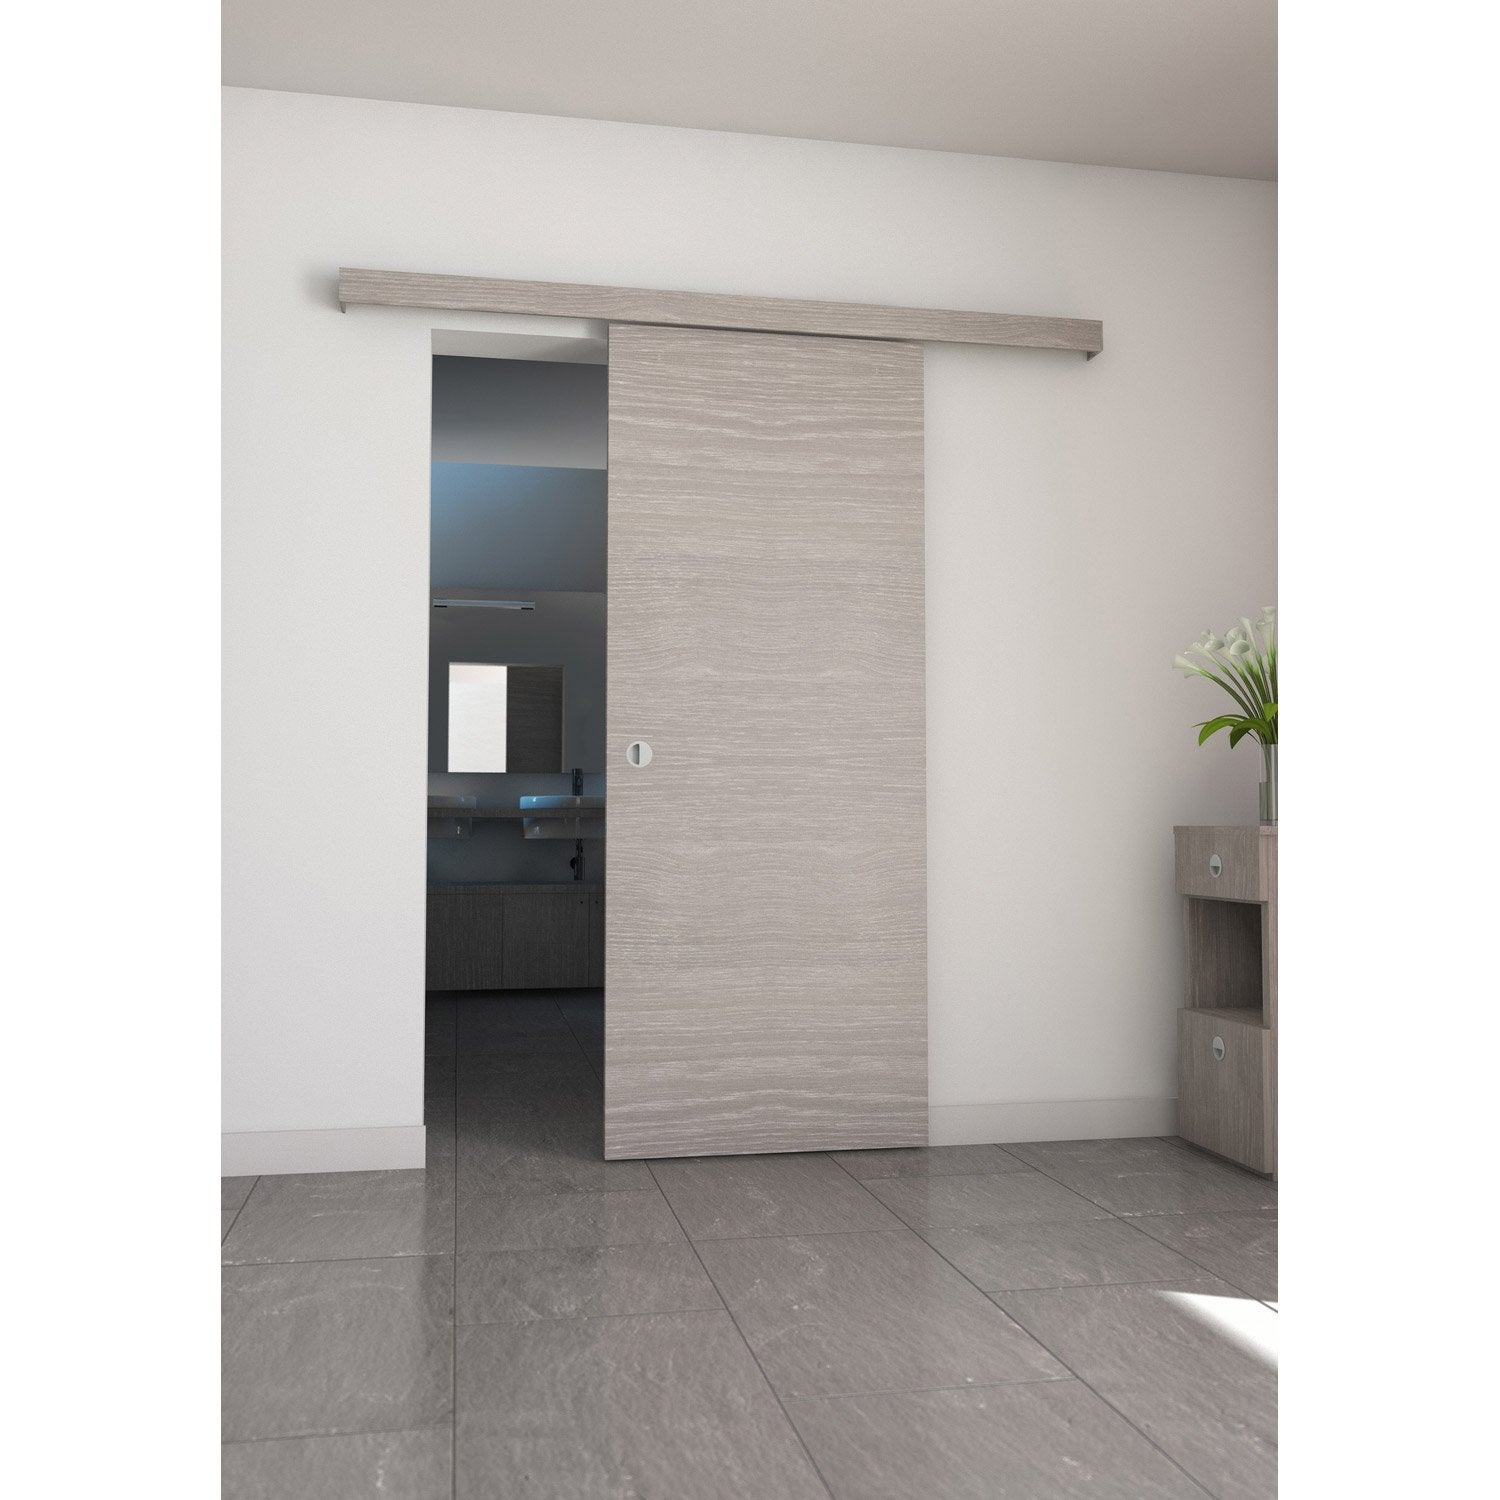 Ensemble porte coulissante coulicool mdf rev tu aluminium for Porte coulissante interieur leroy merlin